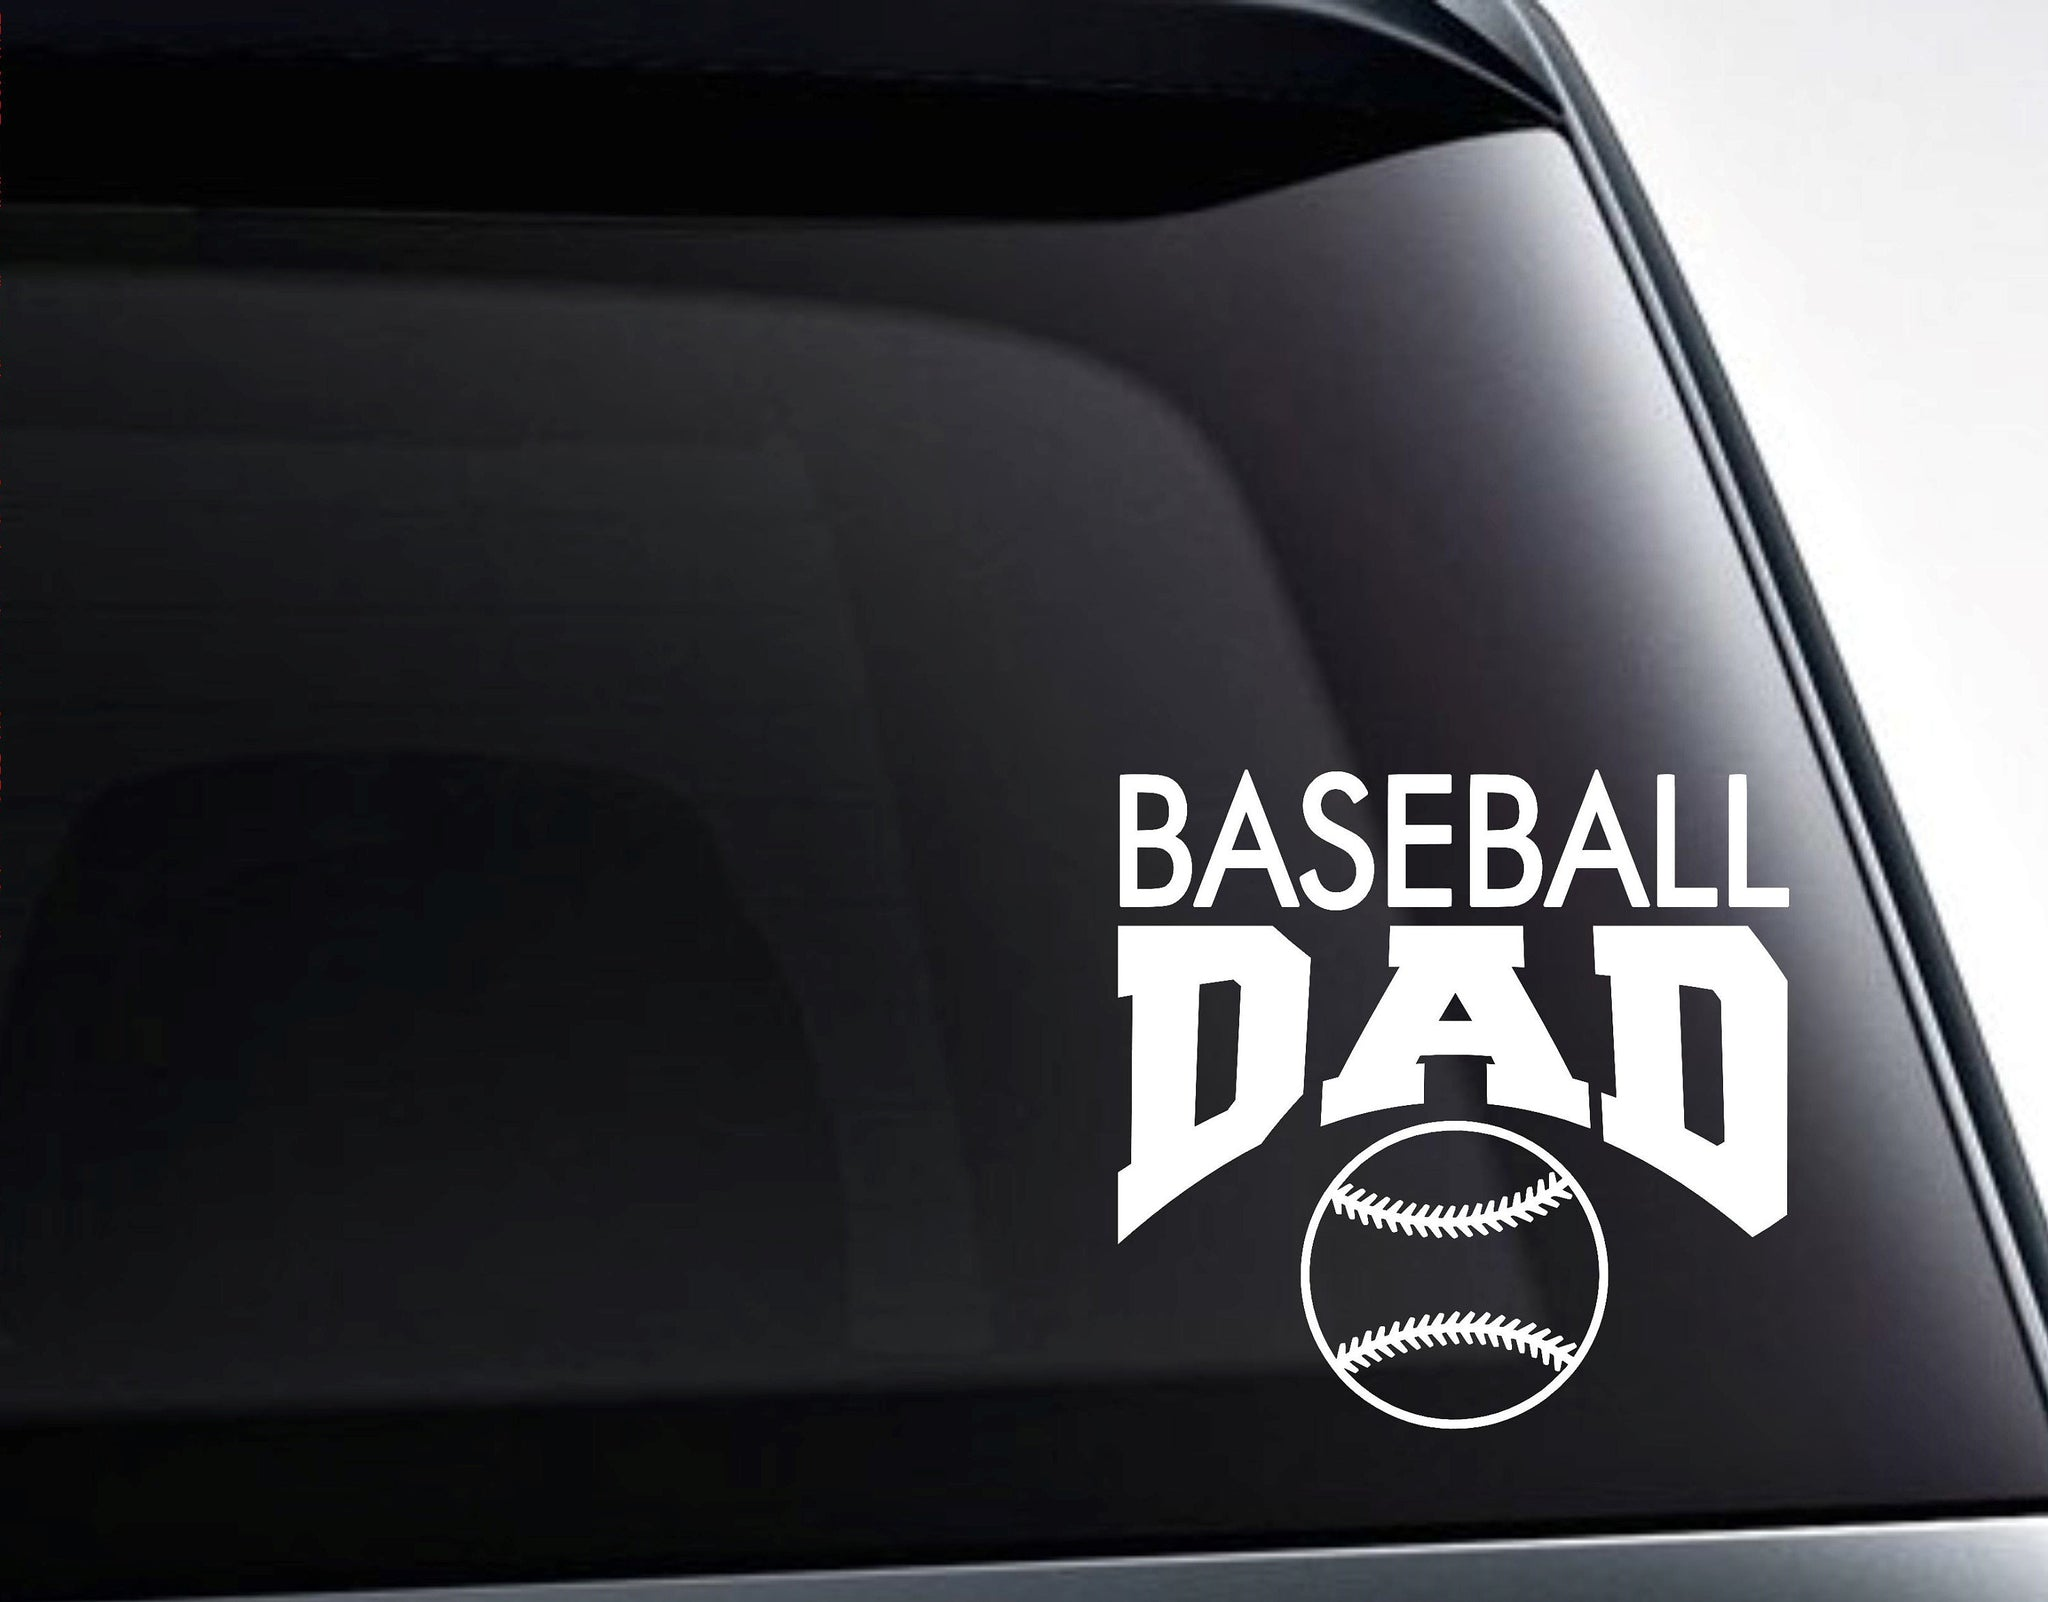 Baseball Dad Decal, Baseball Dad Sticker